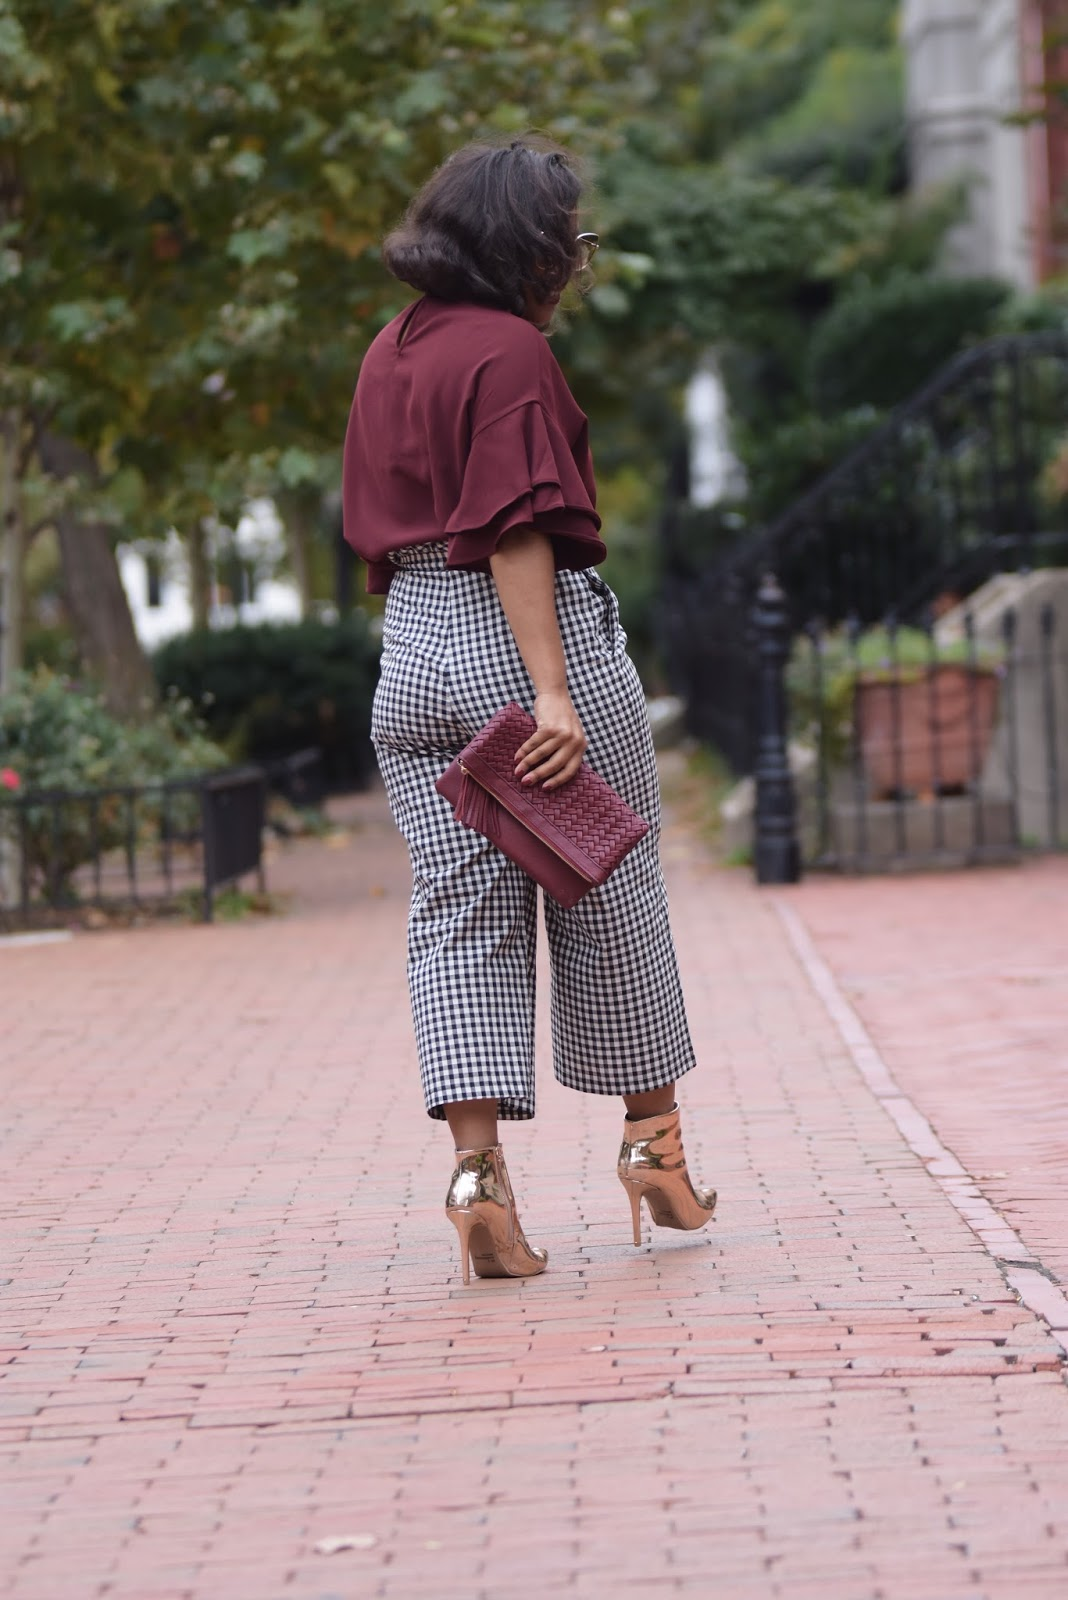 Ruffle sleeves, vichy print, metalic boots, printed pants, fall outfits